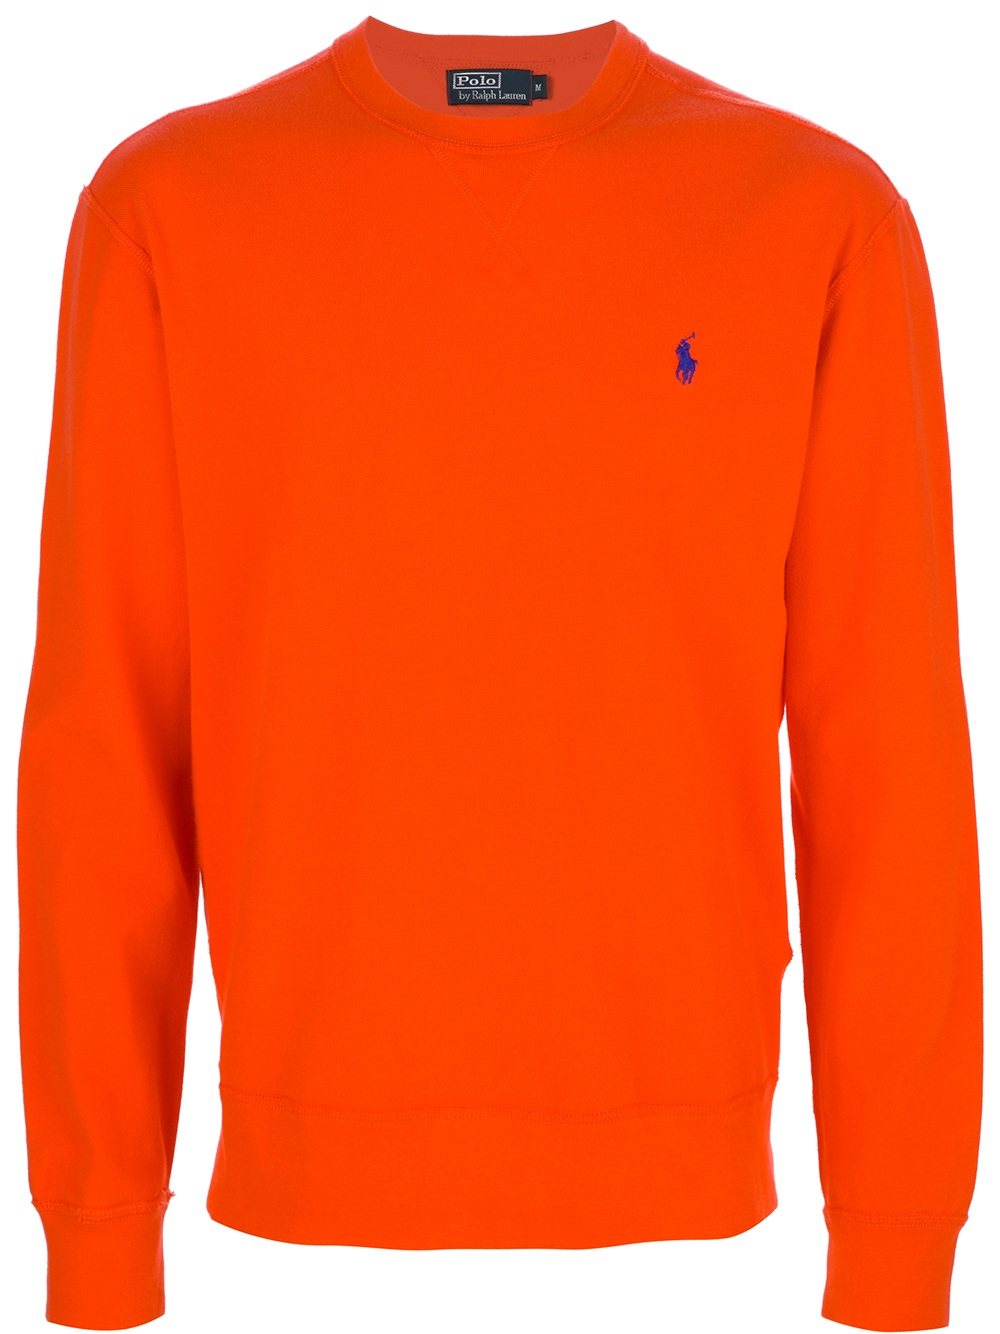 polo ralph lauren crew neck sweatshirt in orange for men. Black Bedroom Furniture Sets. Home Design Ideas